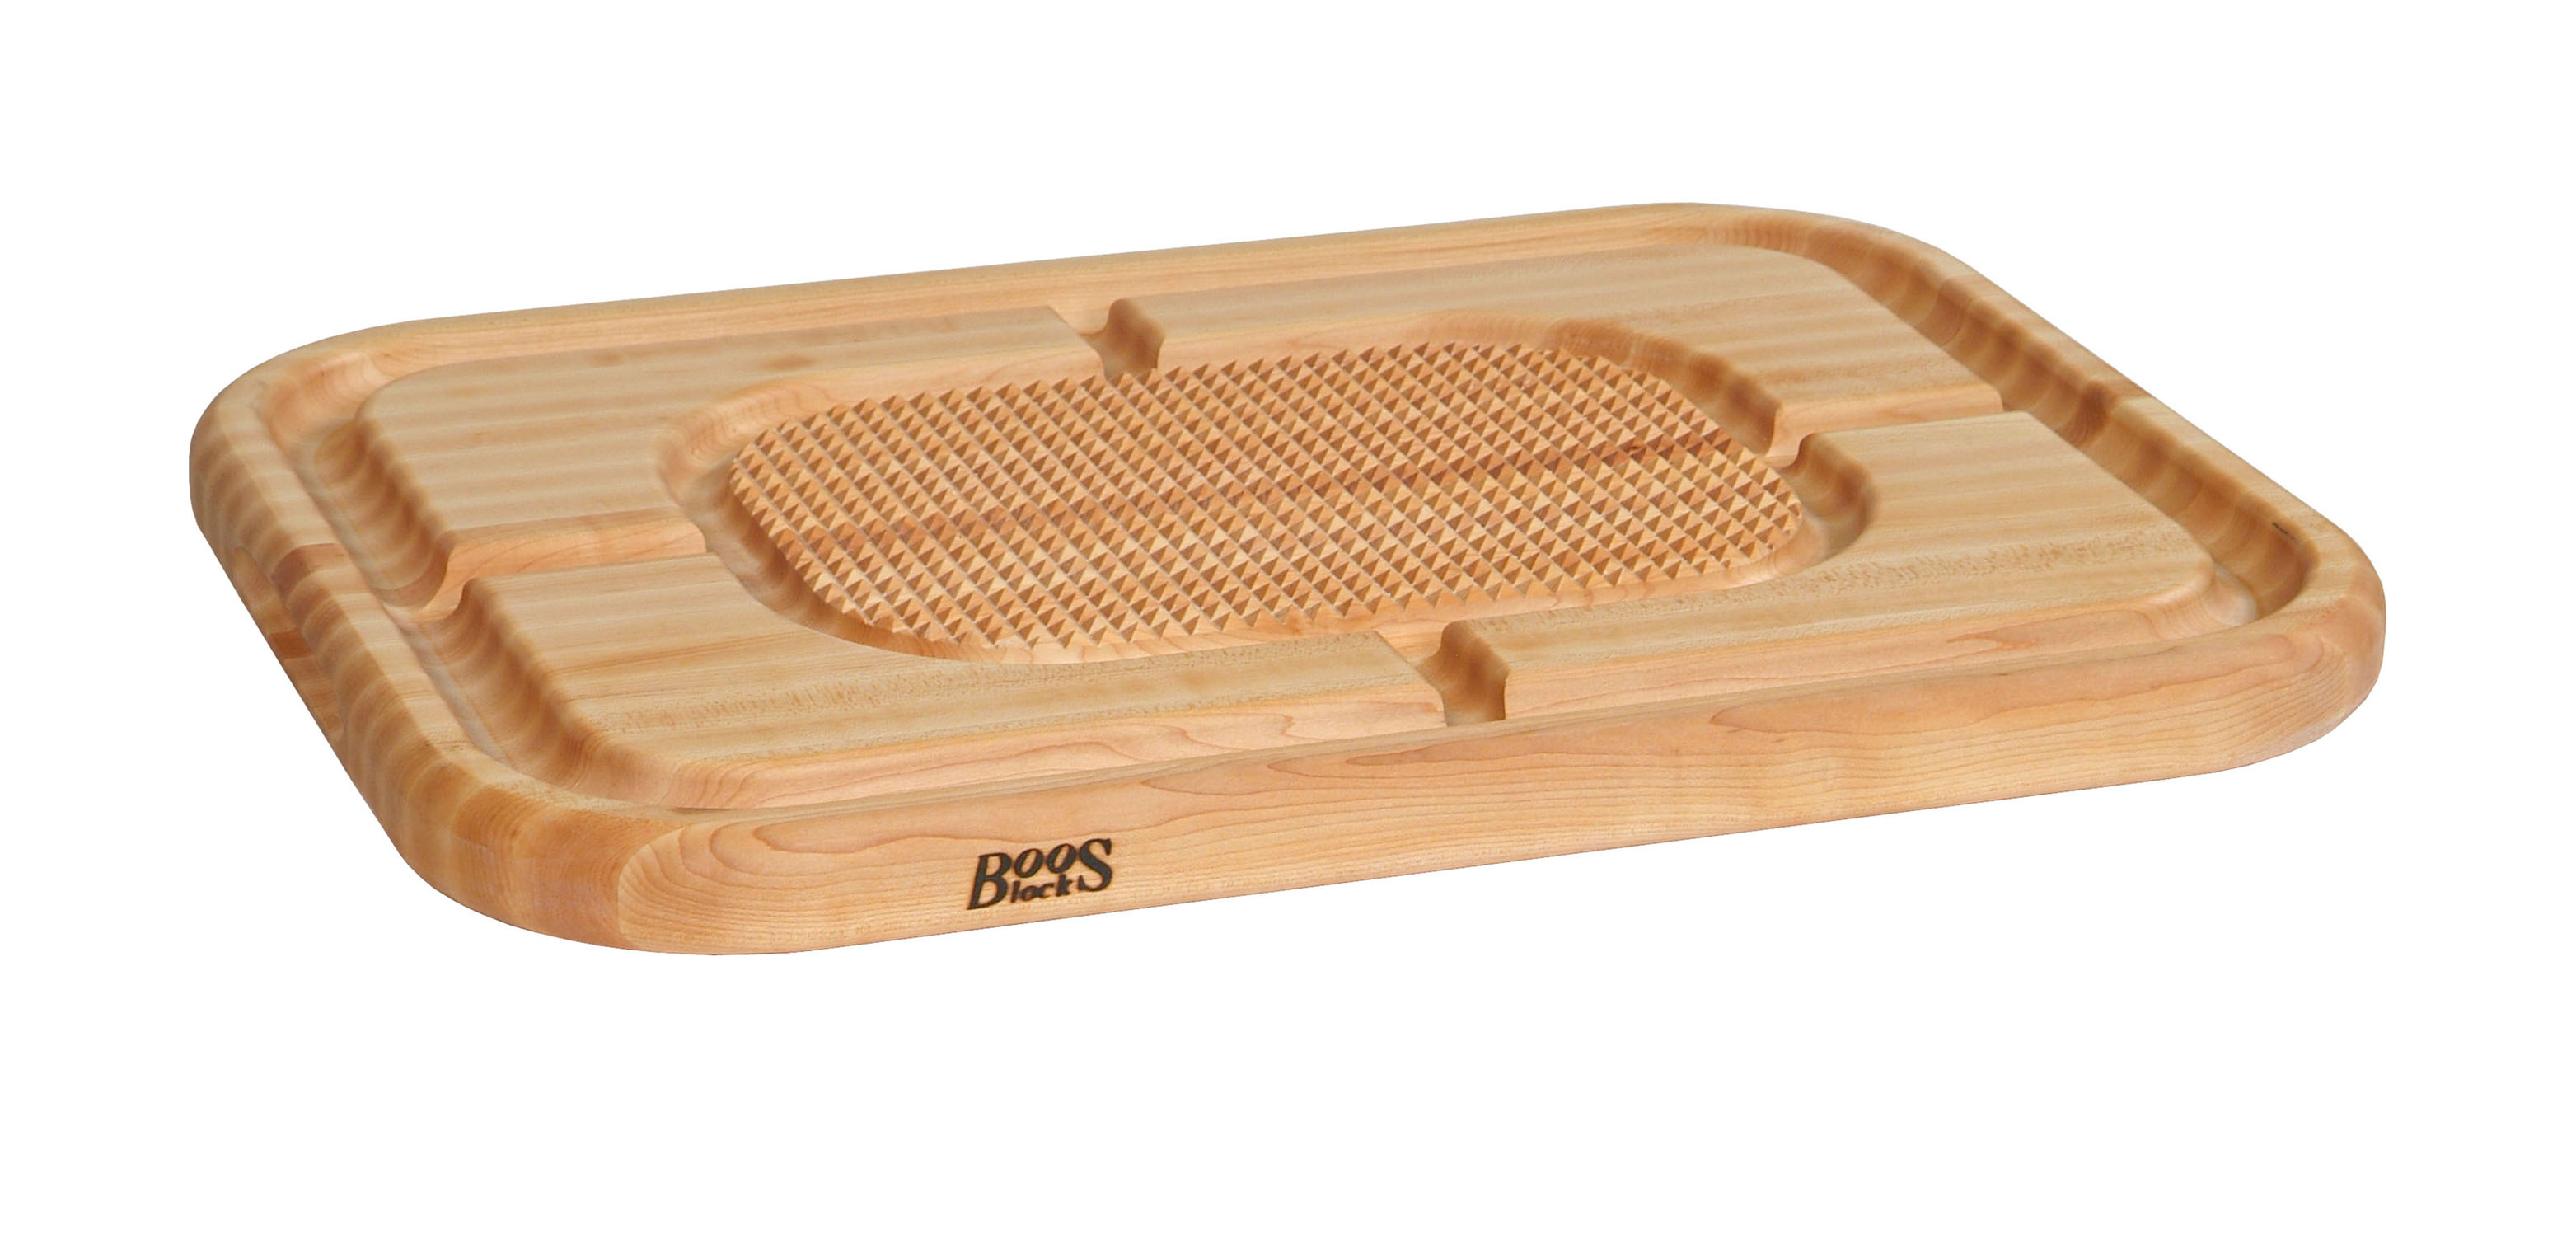 John Boos Maple Carving Board with Pyramids and Grooves